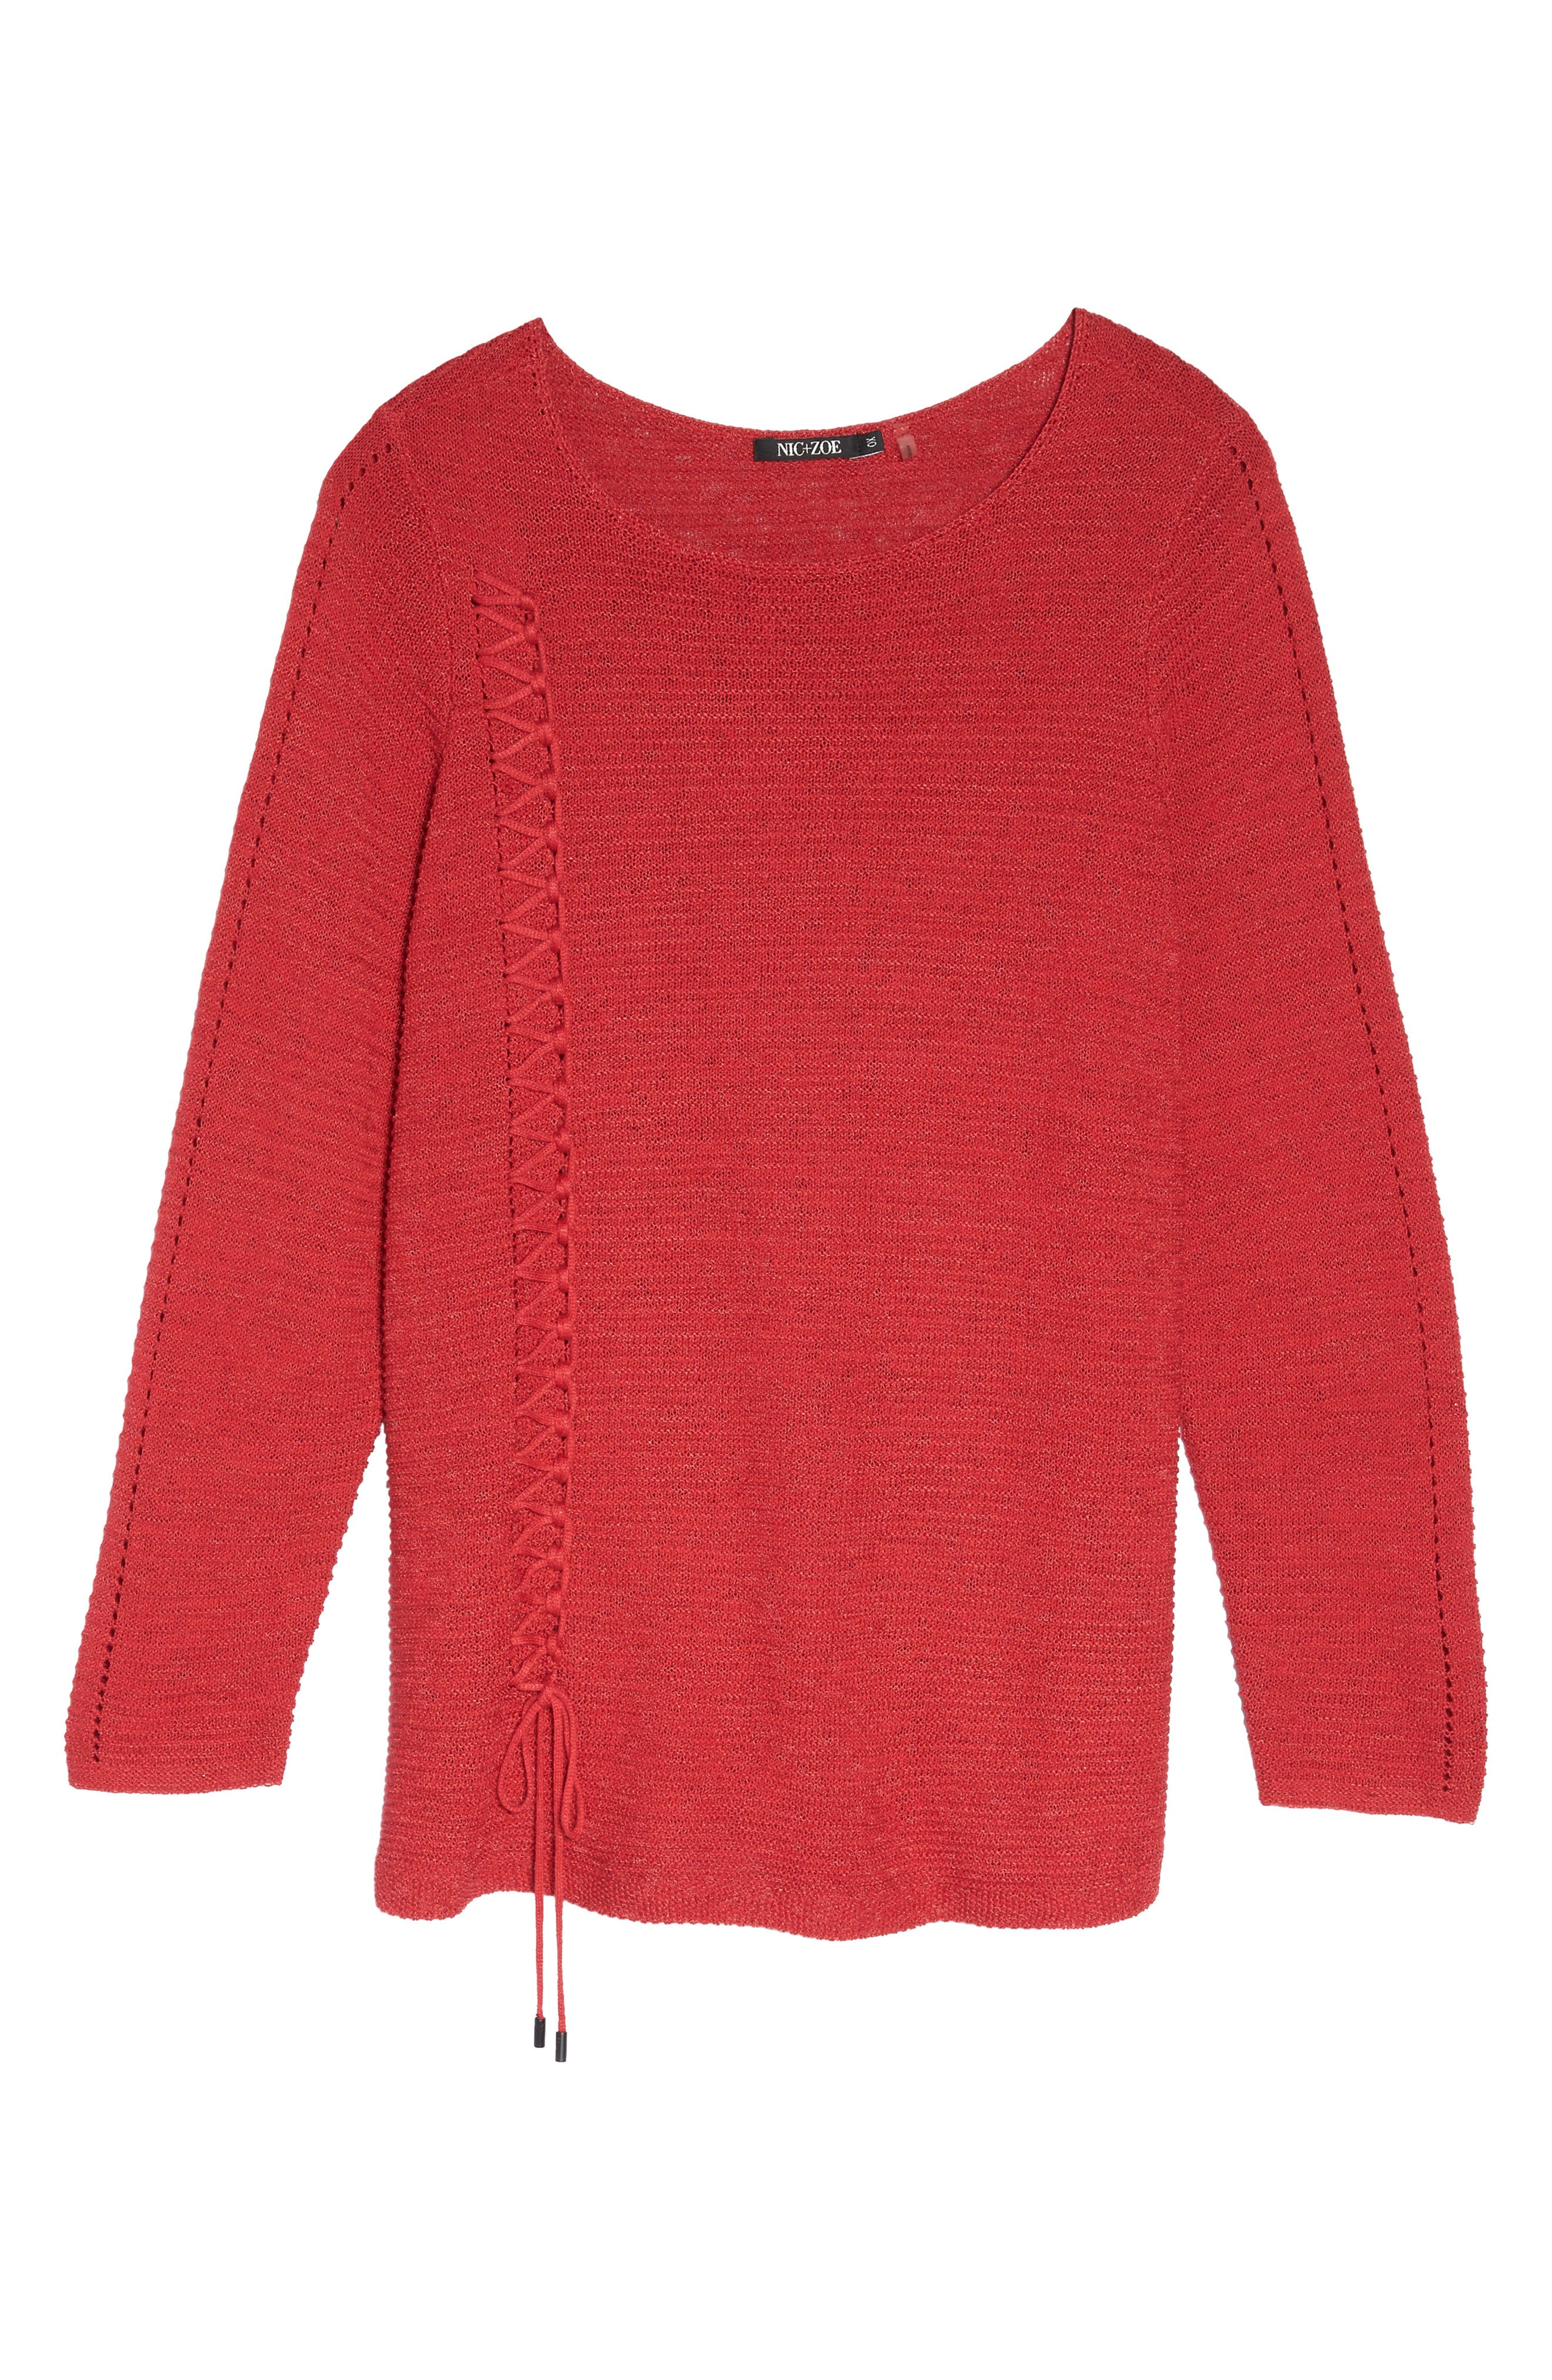 Braided Up Sweater,                             Alternate thumbnail 6, color,                             True Red